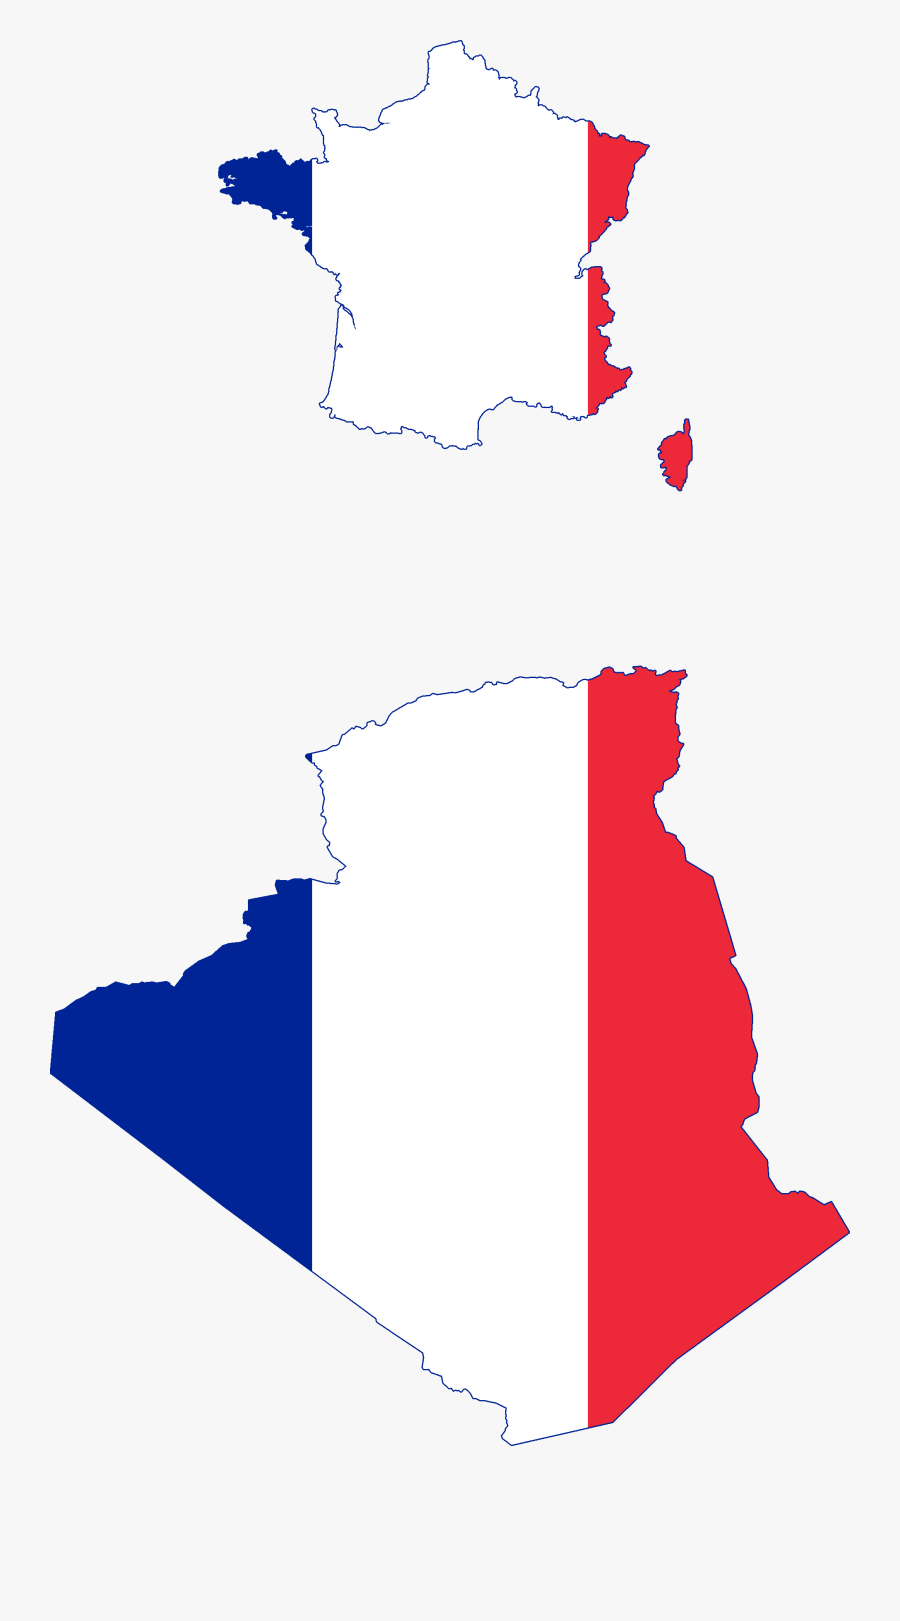 Free Png Download Vichy France Flag Map Png Images - France Map Flag Png, Transparent Clipart